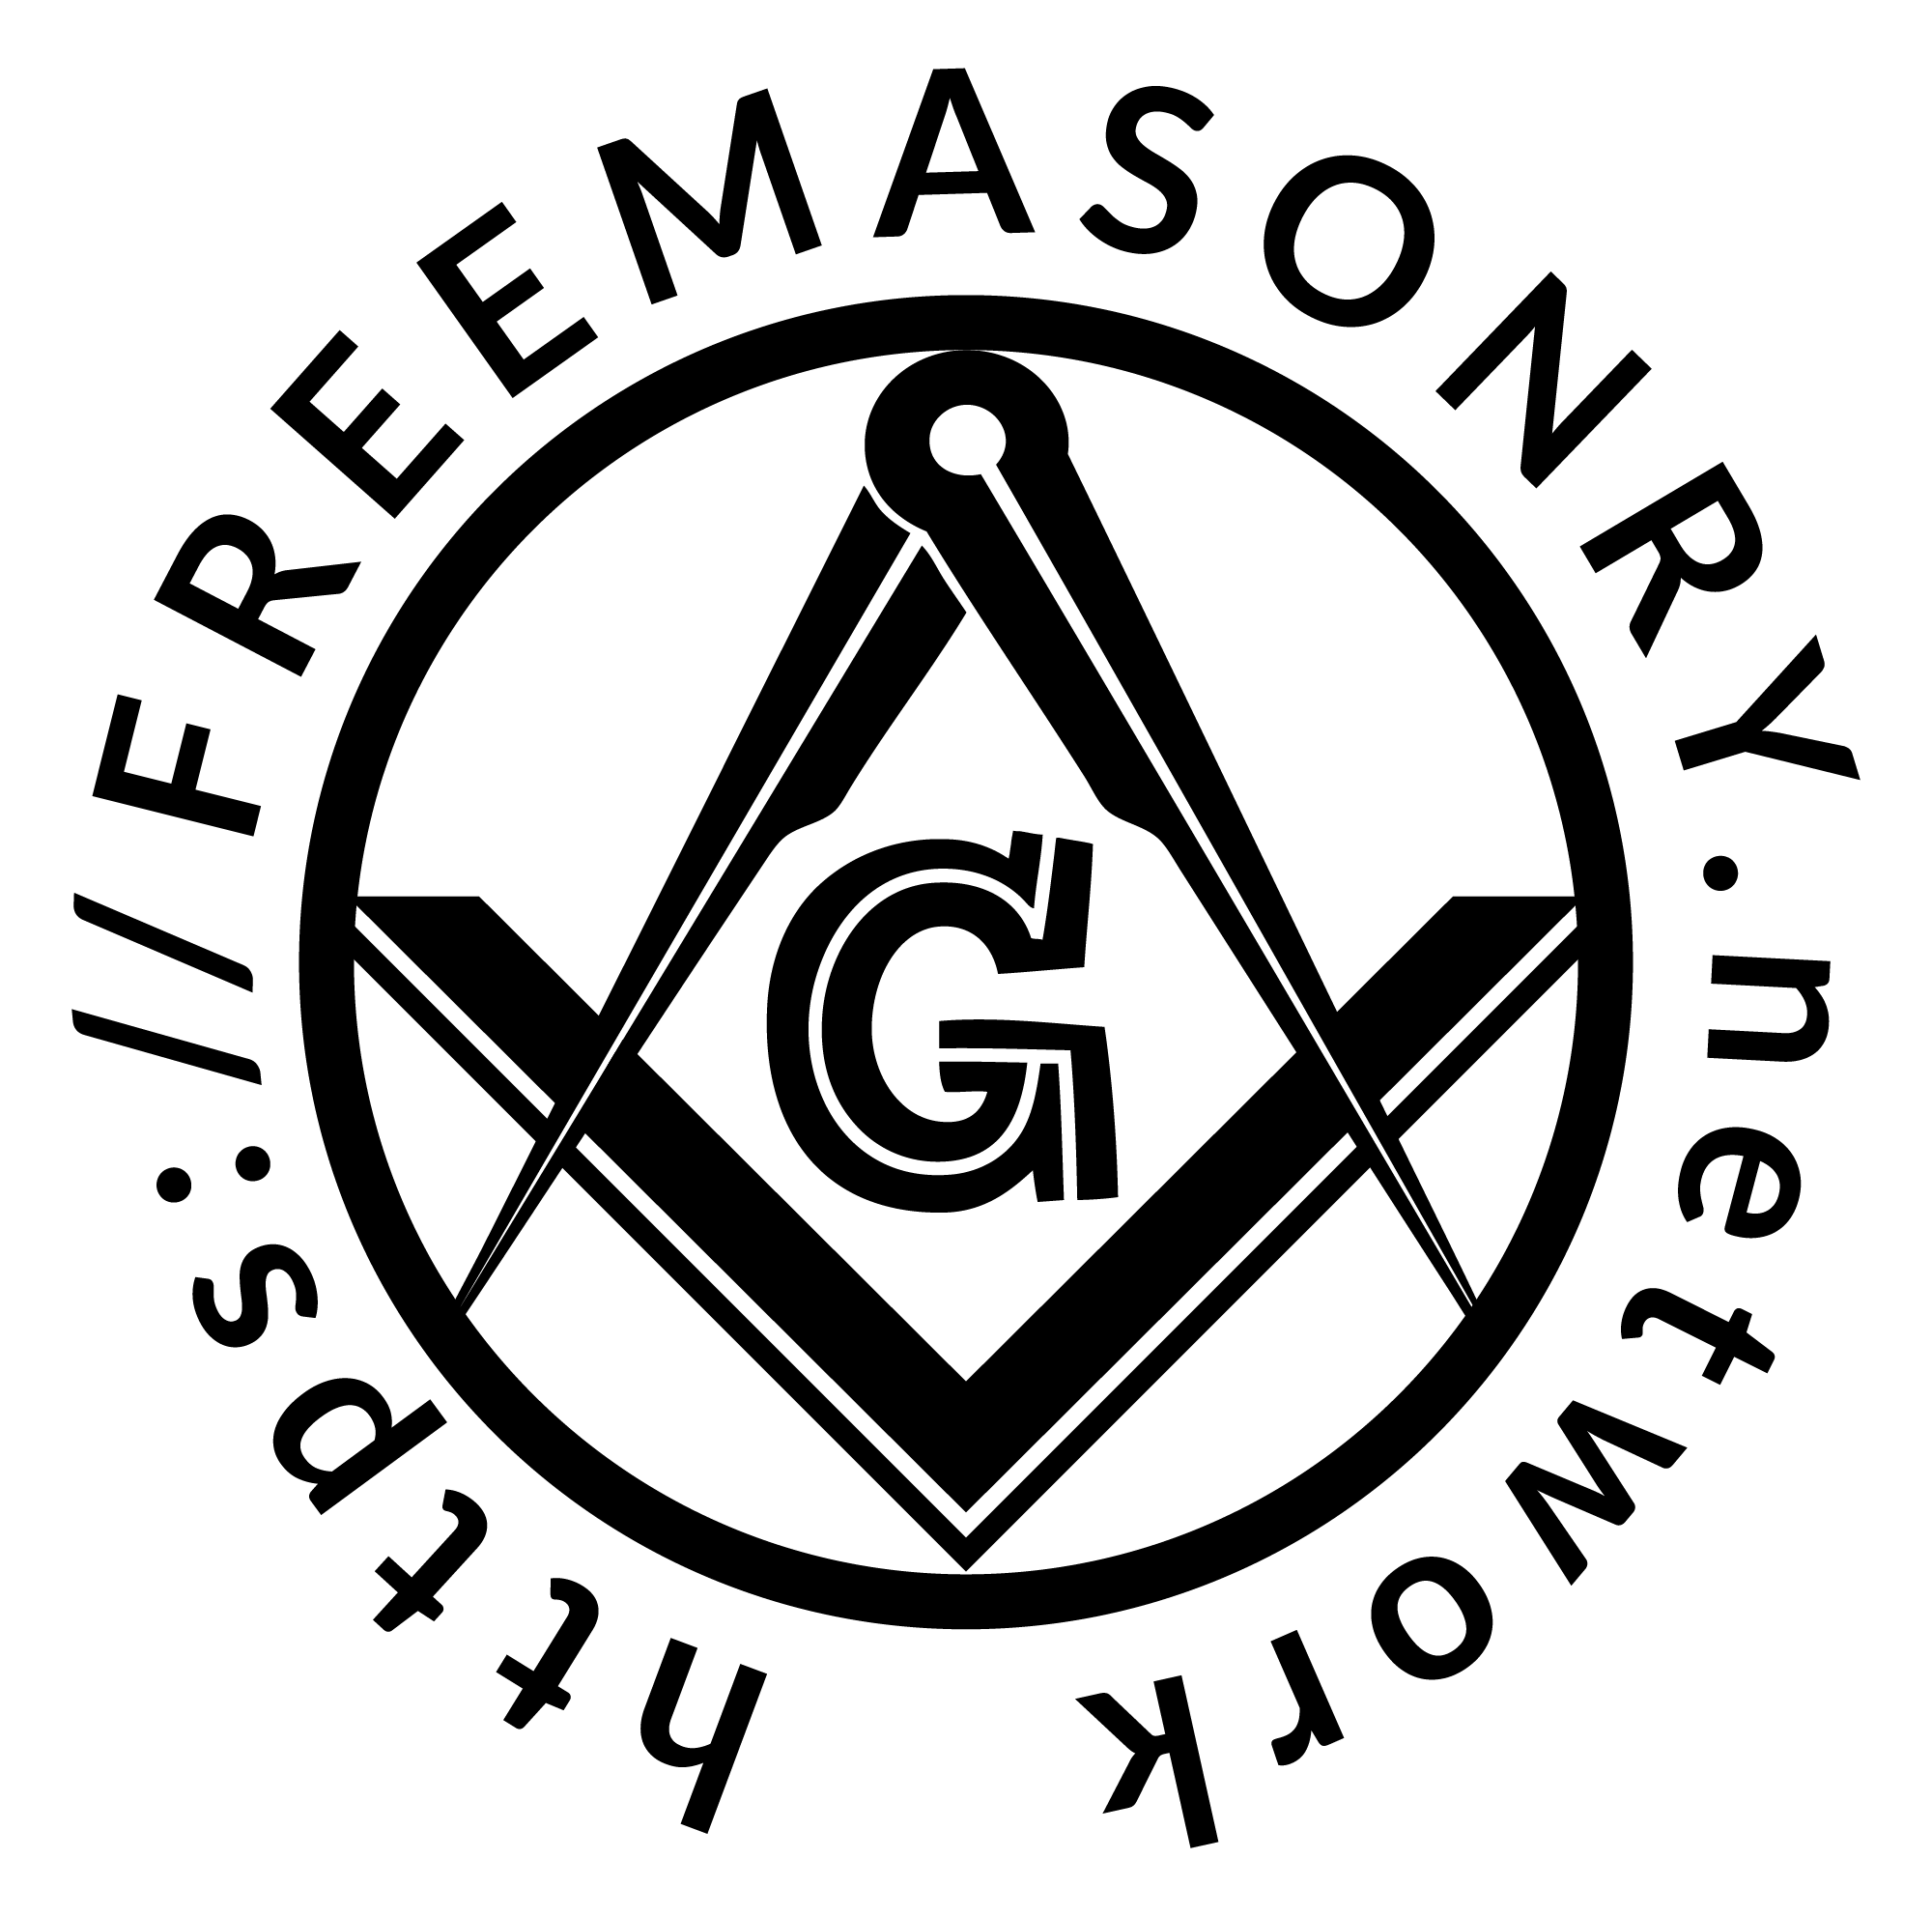 BUY A MASONIC APRON CASE